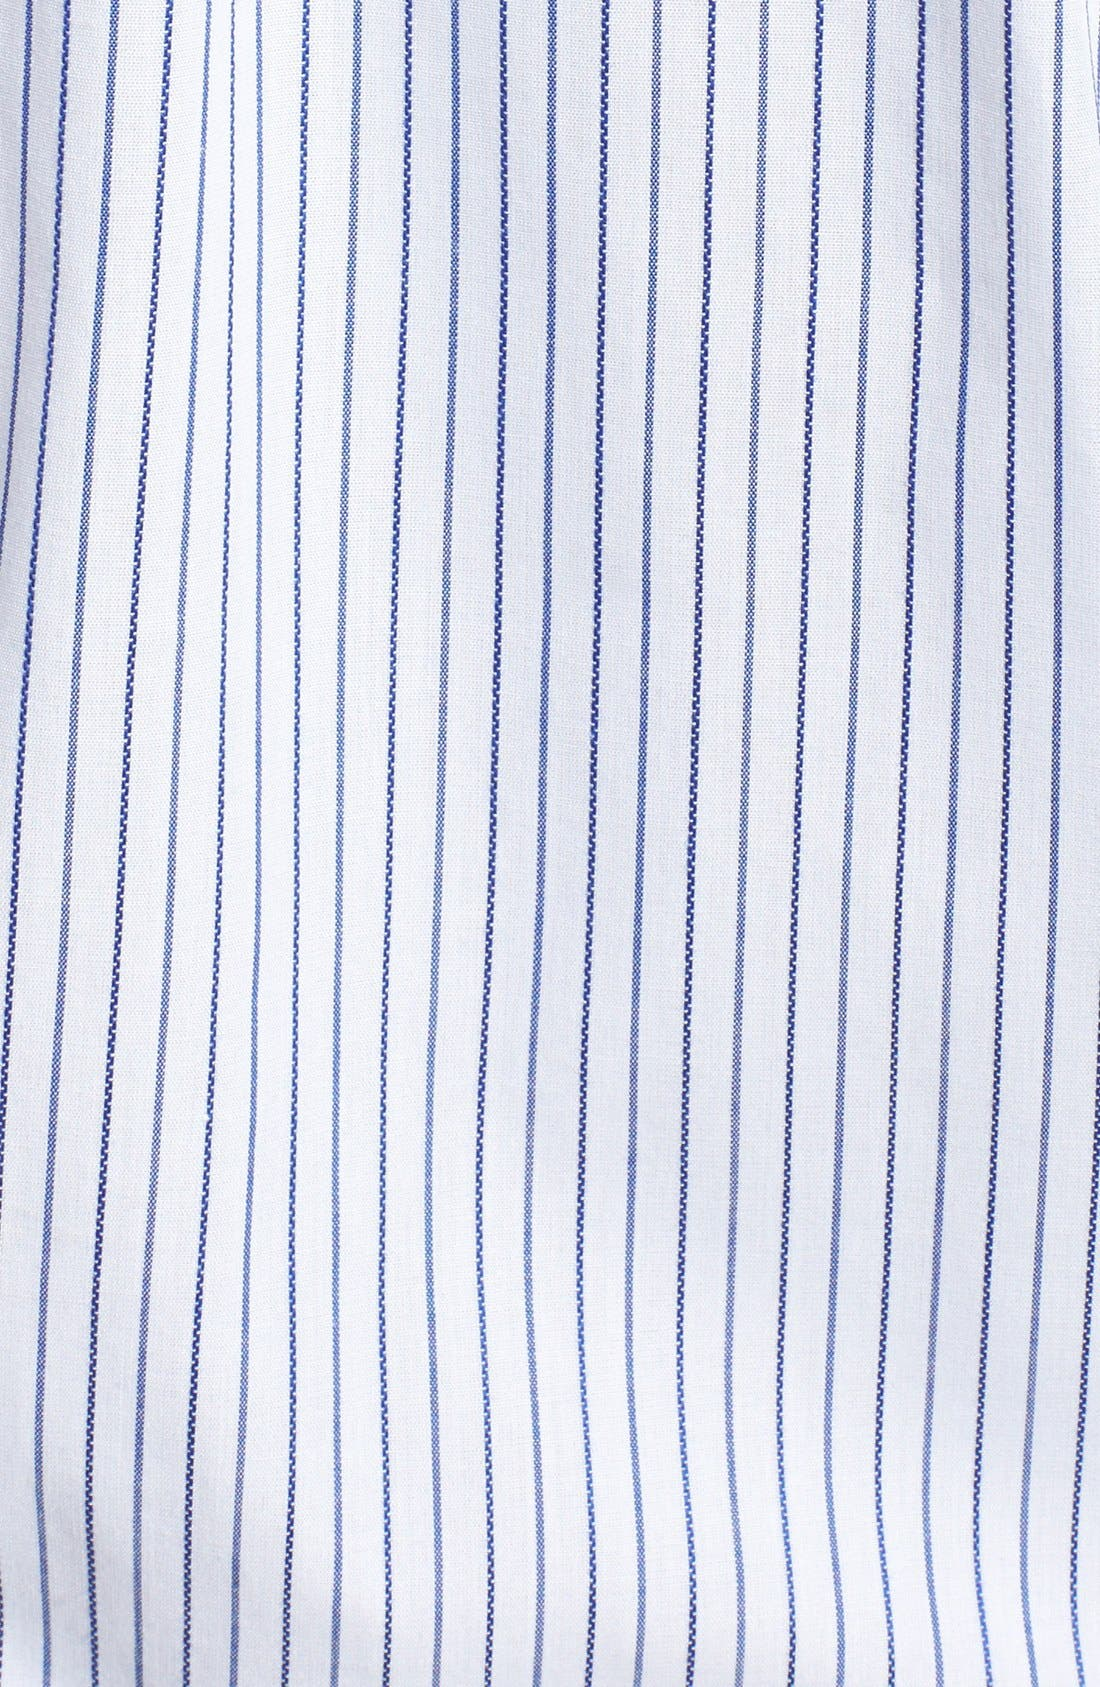 'Epic Easy Care' Classic Fit Vertical Pinstripe Wrinkle Resistant Sport Shirt,                             Alternate thumbnail 3, color,                             White/ French Blue